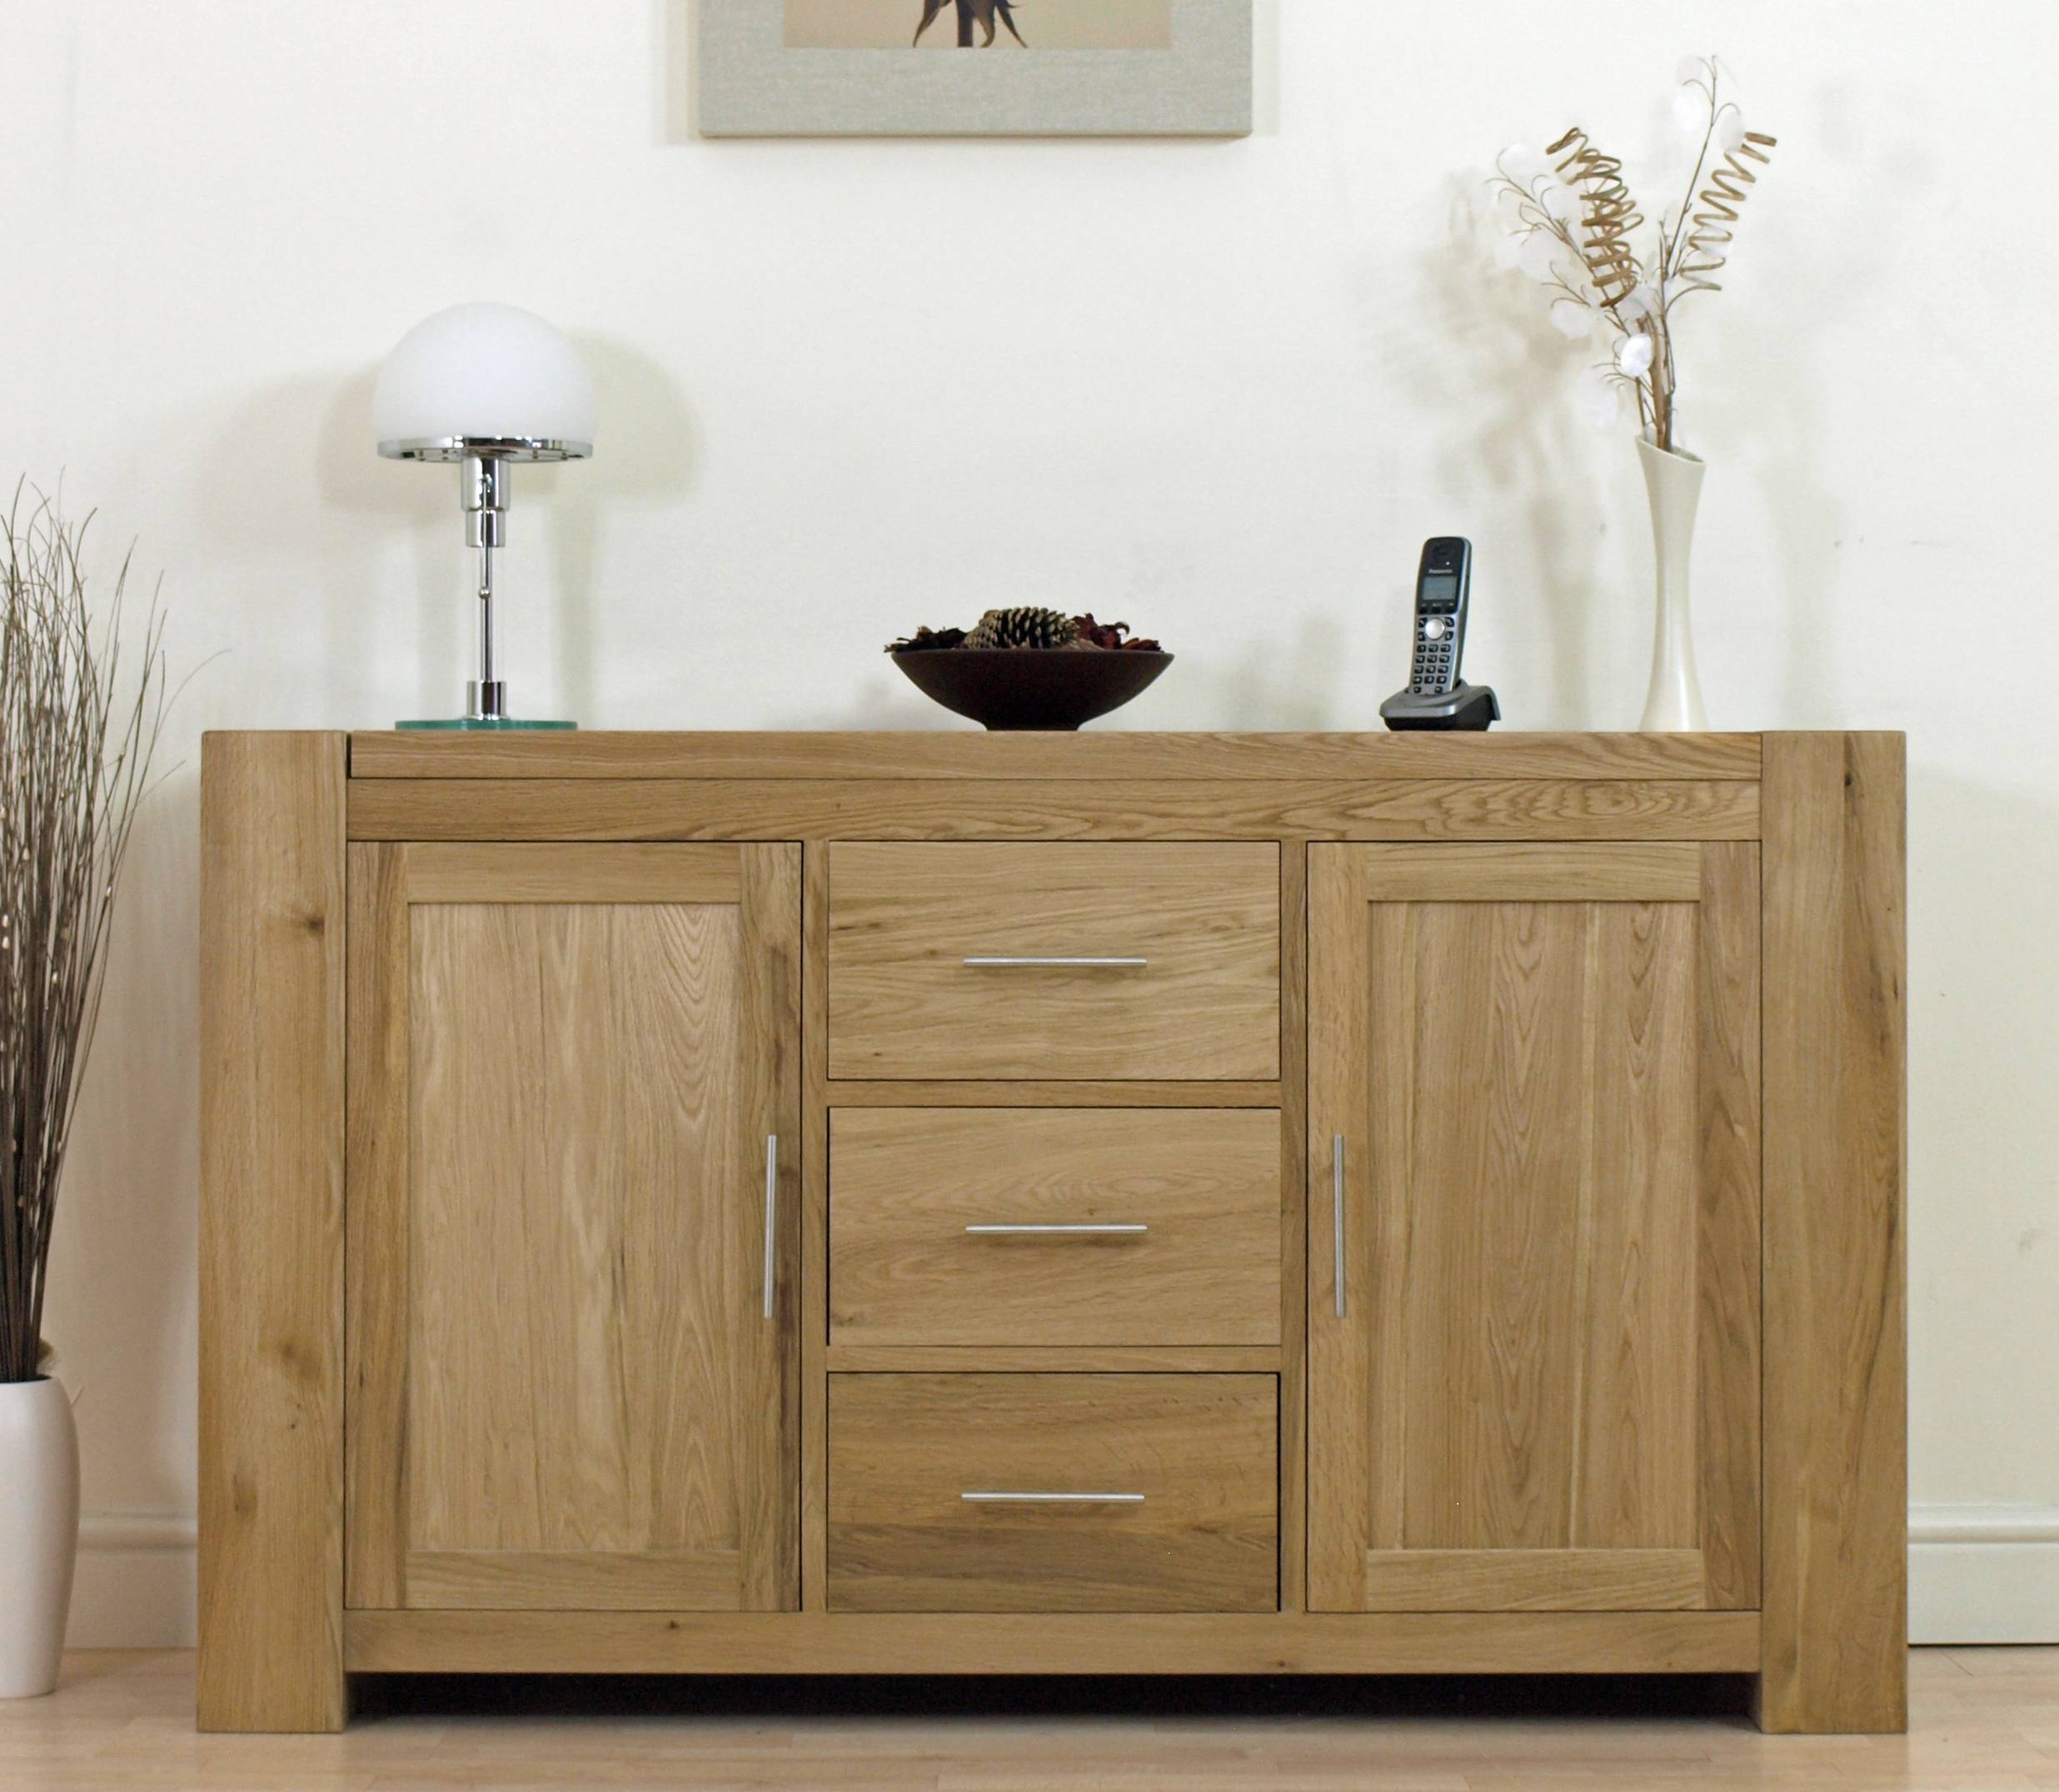 Solid Oak Sideboard Is Your First Choice Living Room Furniture – Hgnv Regarding Most Up To Date Solid Oak Sideboards (#13 of 15)